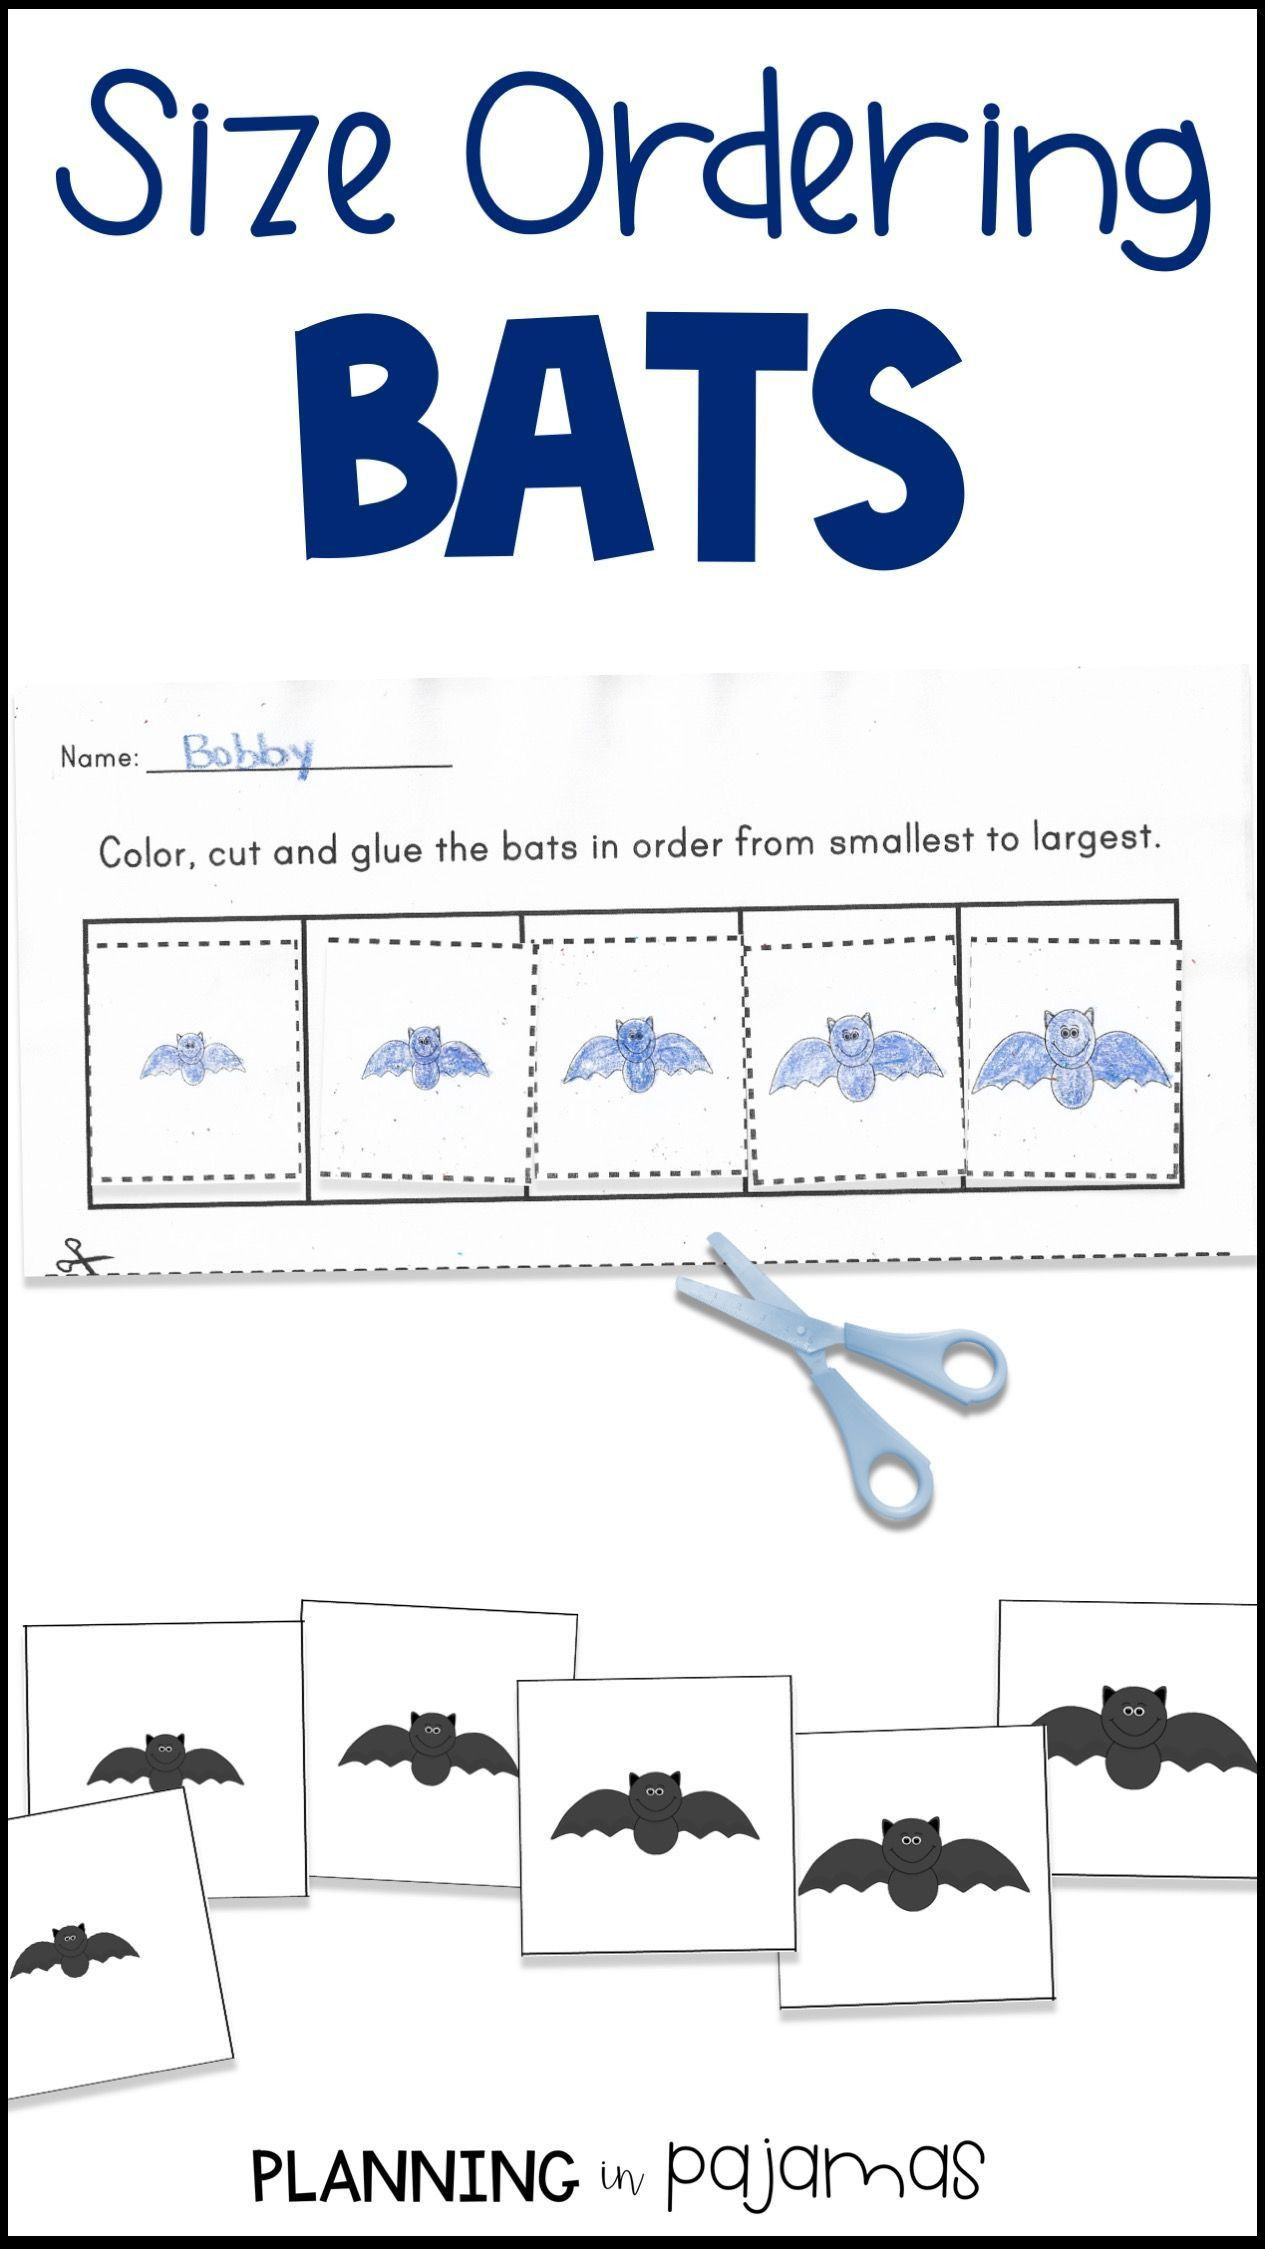 5 Greatest And Smallest Number Worksheets In